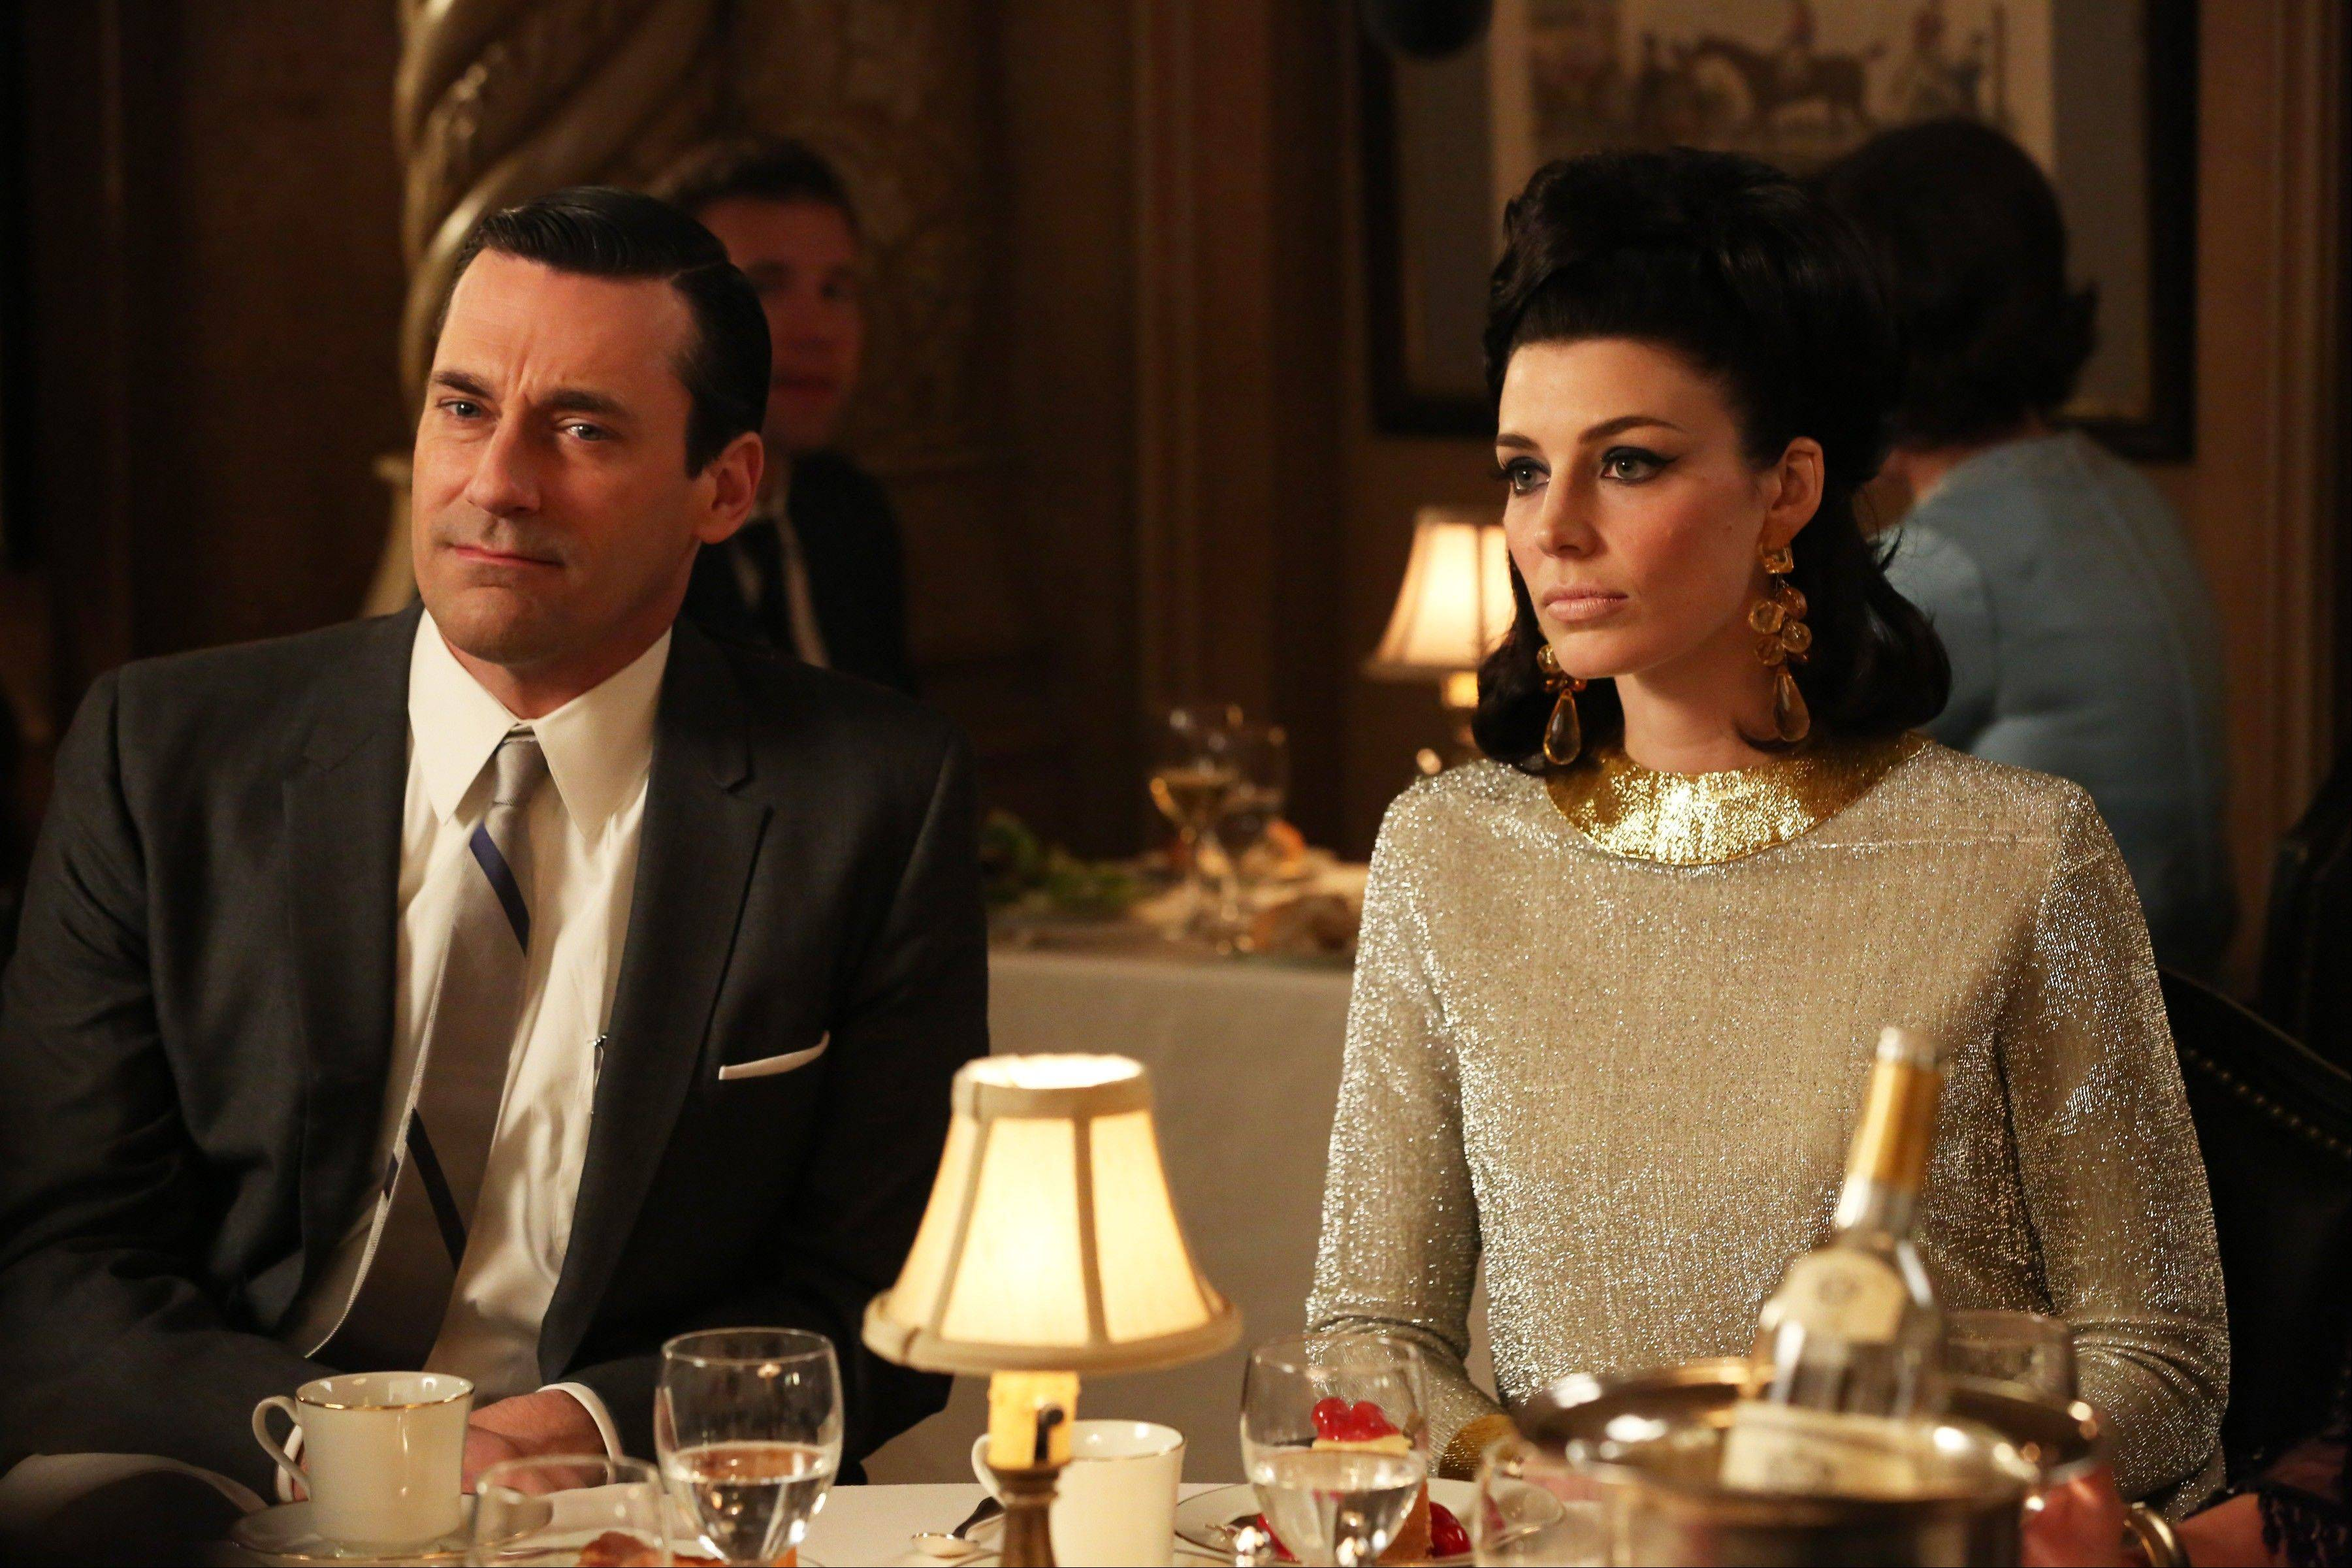 Just how low can Don Draper (Jon Hamm) sink before it all ends with wife Megan (Jessica Pare)? Viewers might find out in the next season of AMC�s �Mad Men.�